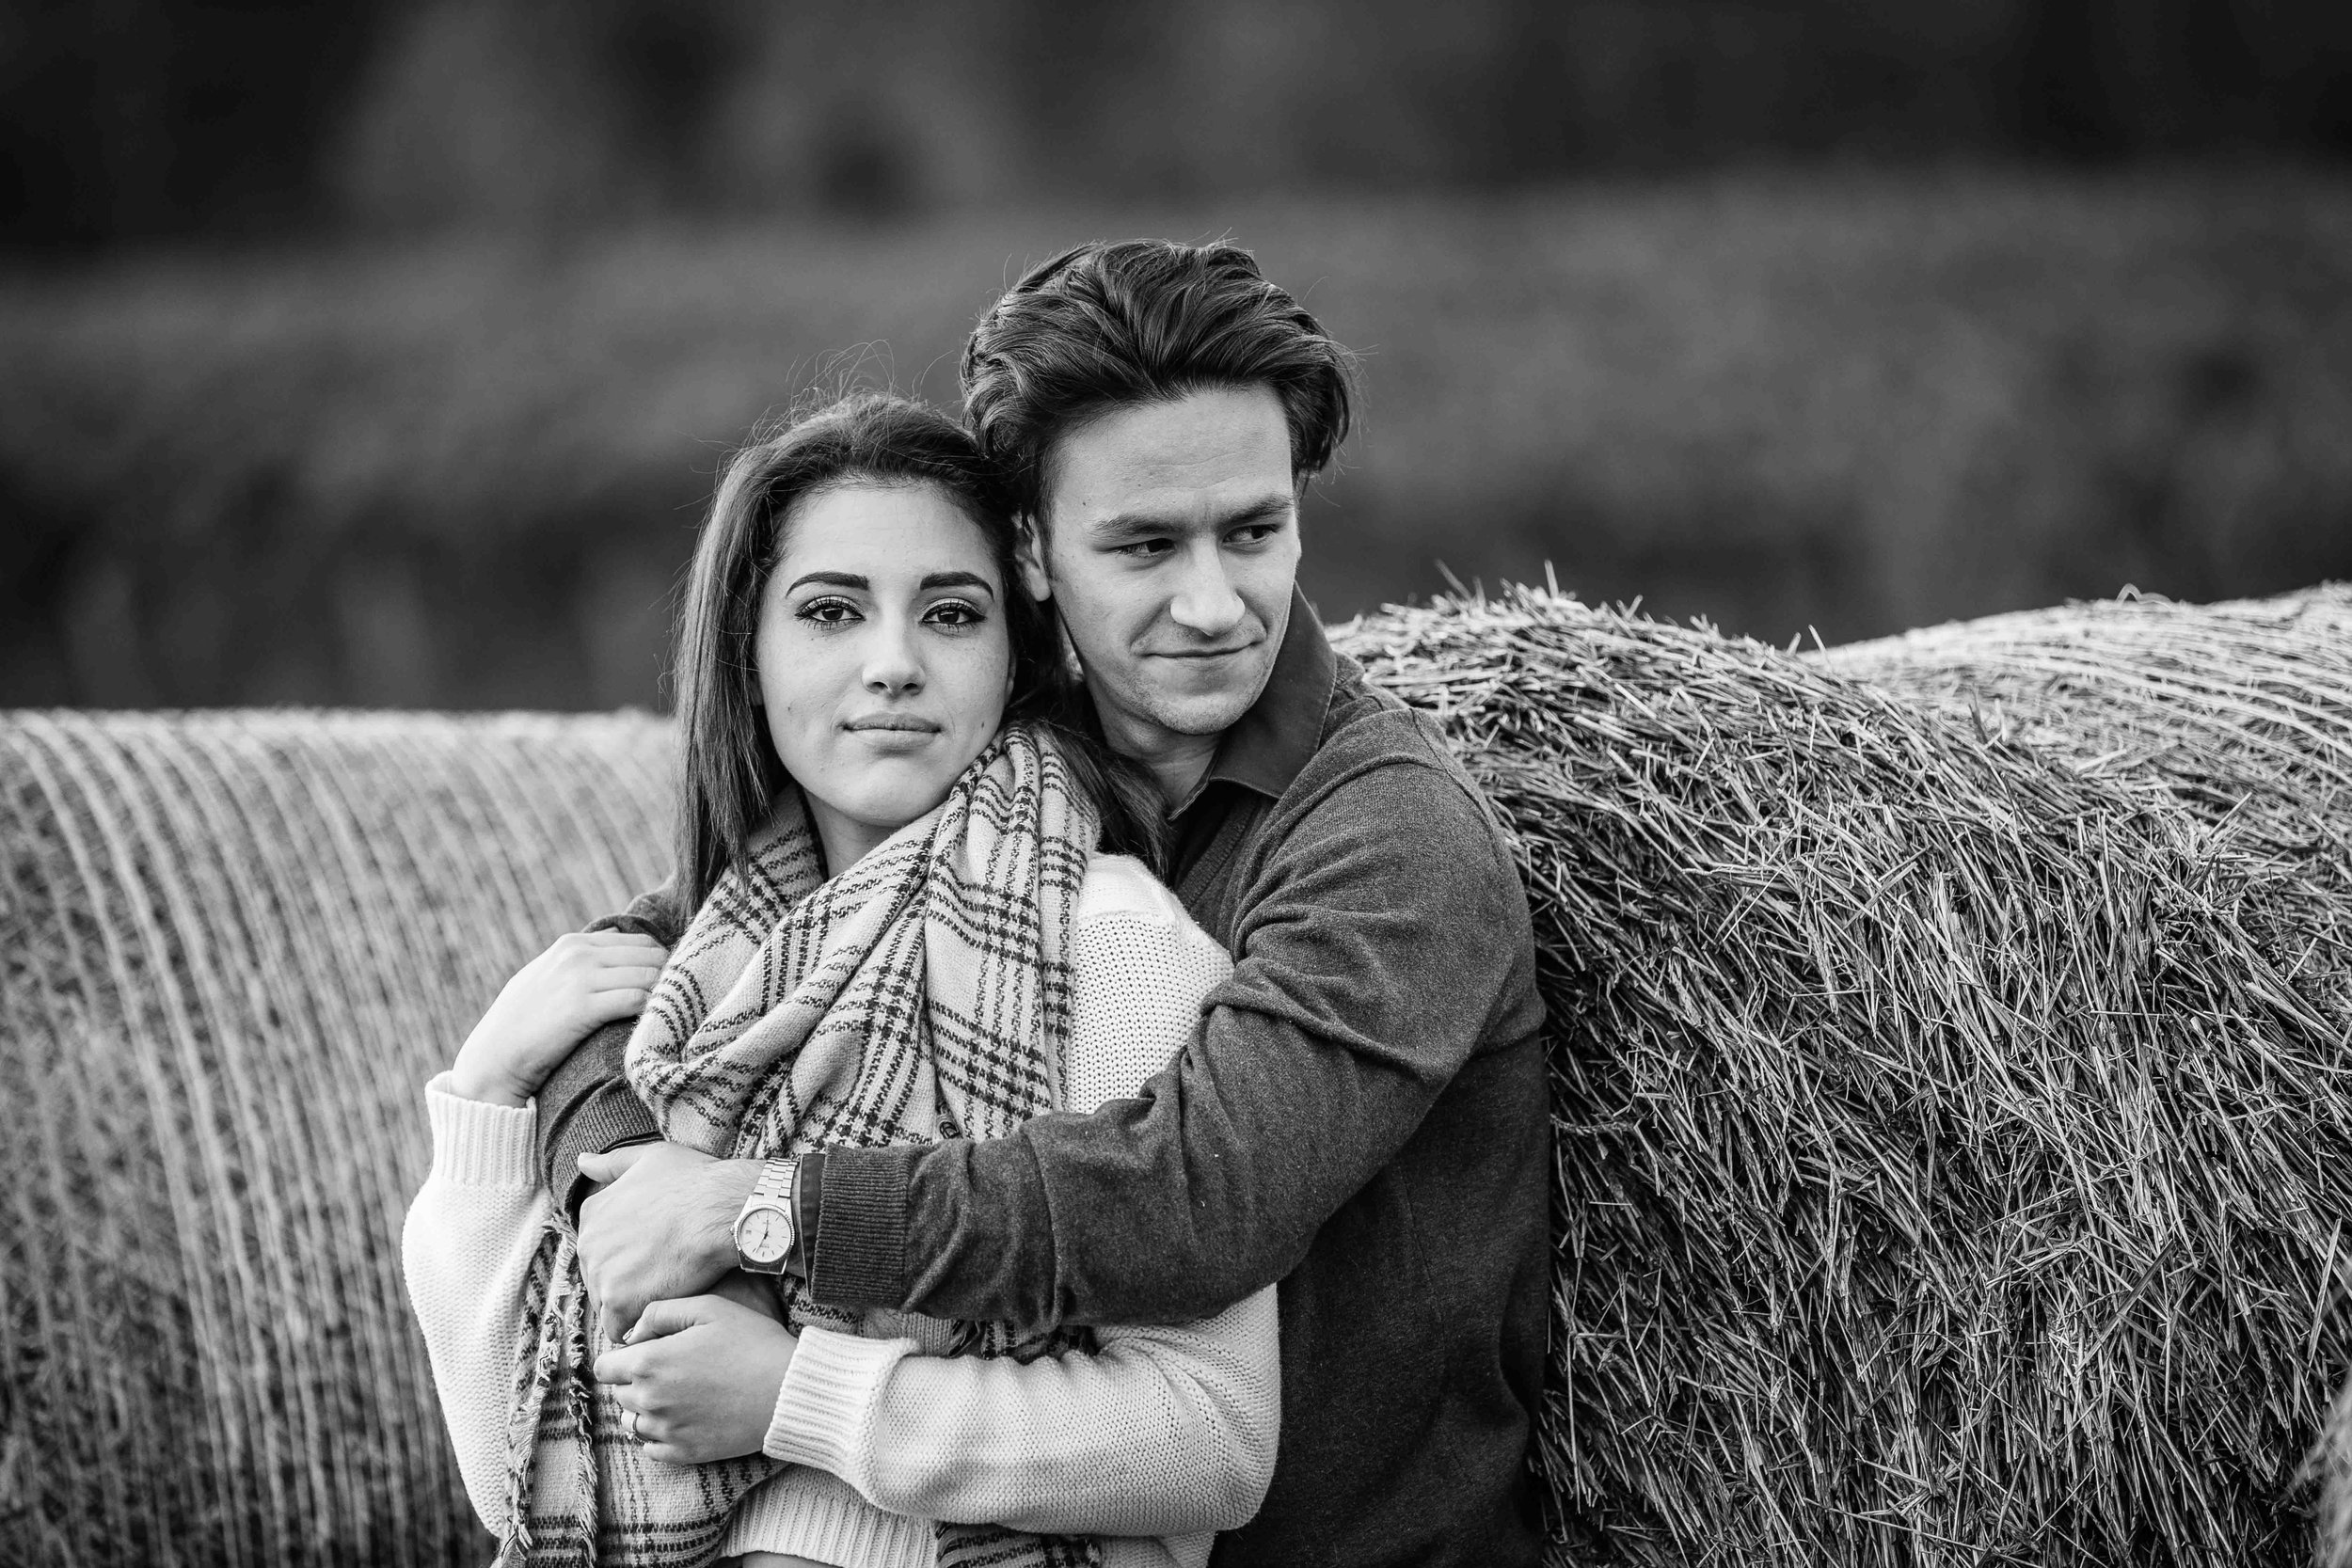 couple leaning on hay bale in field for engagement photos